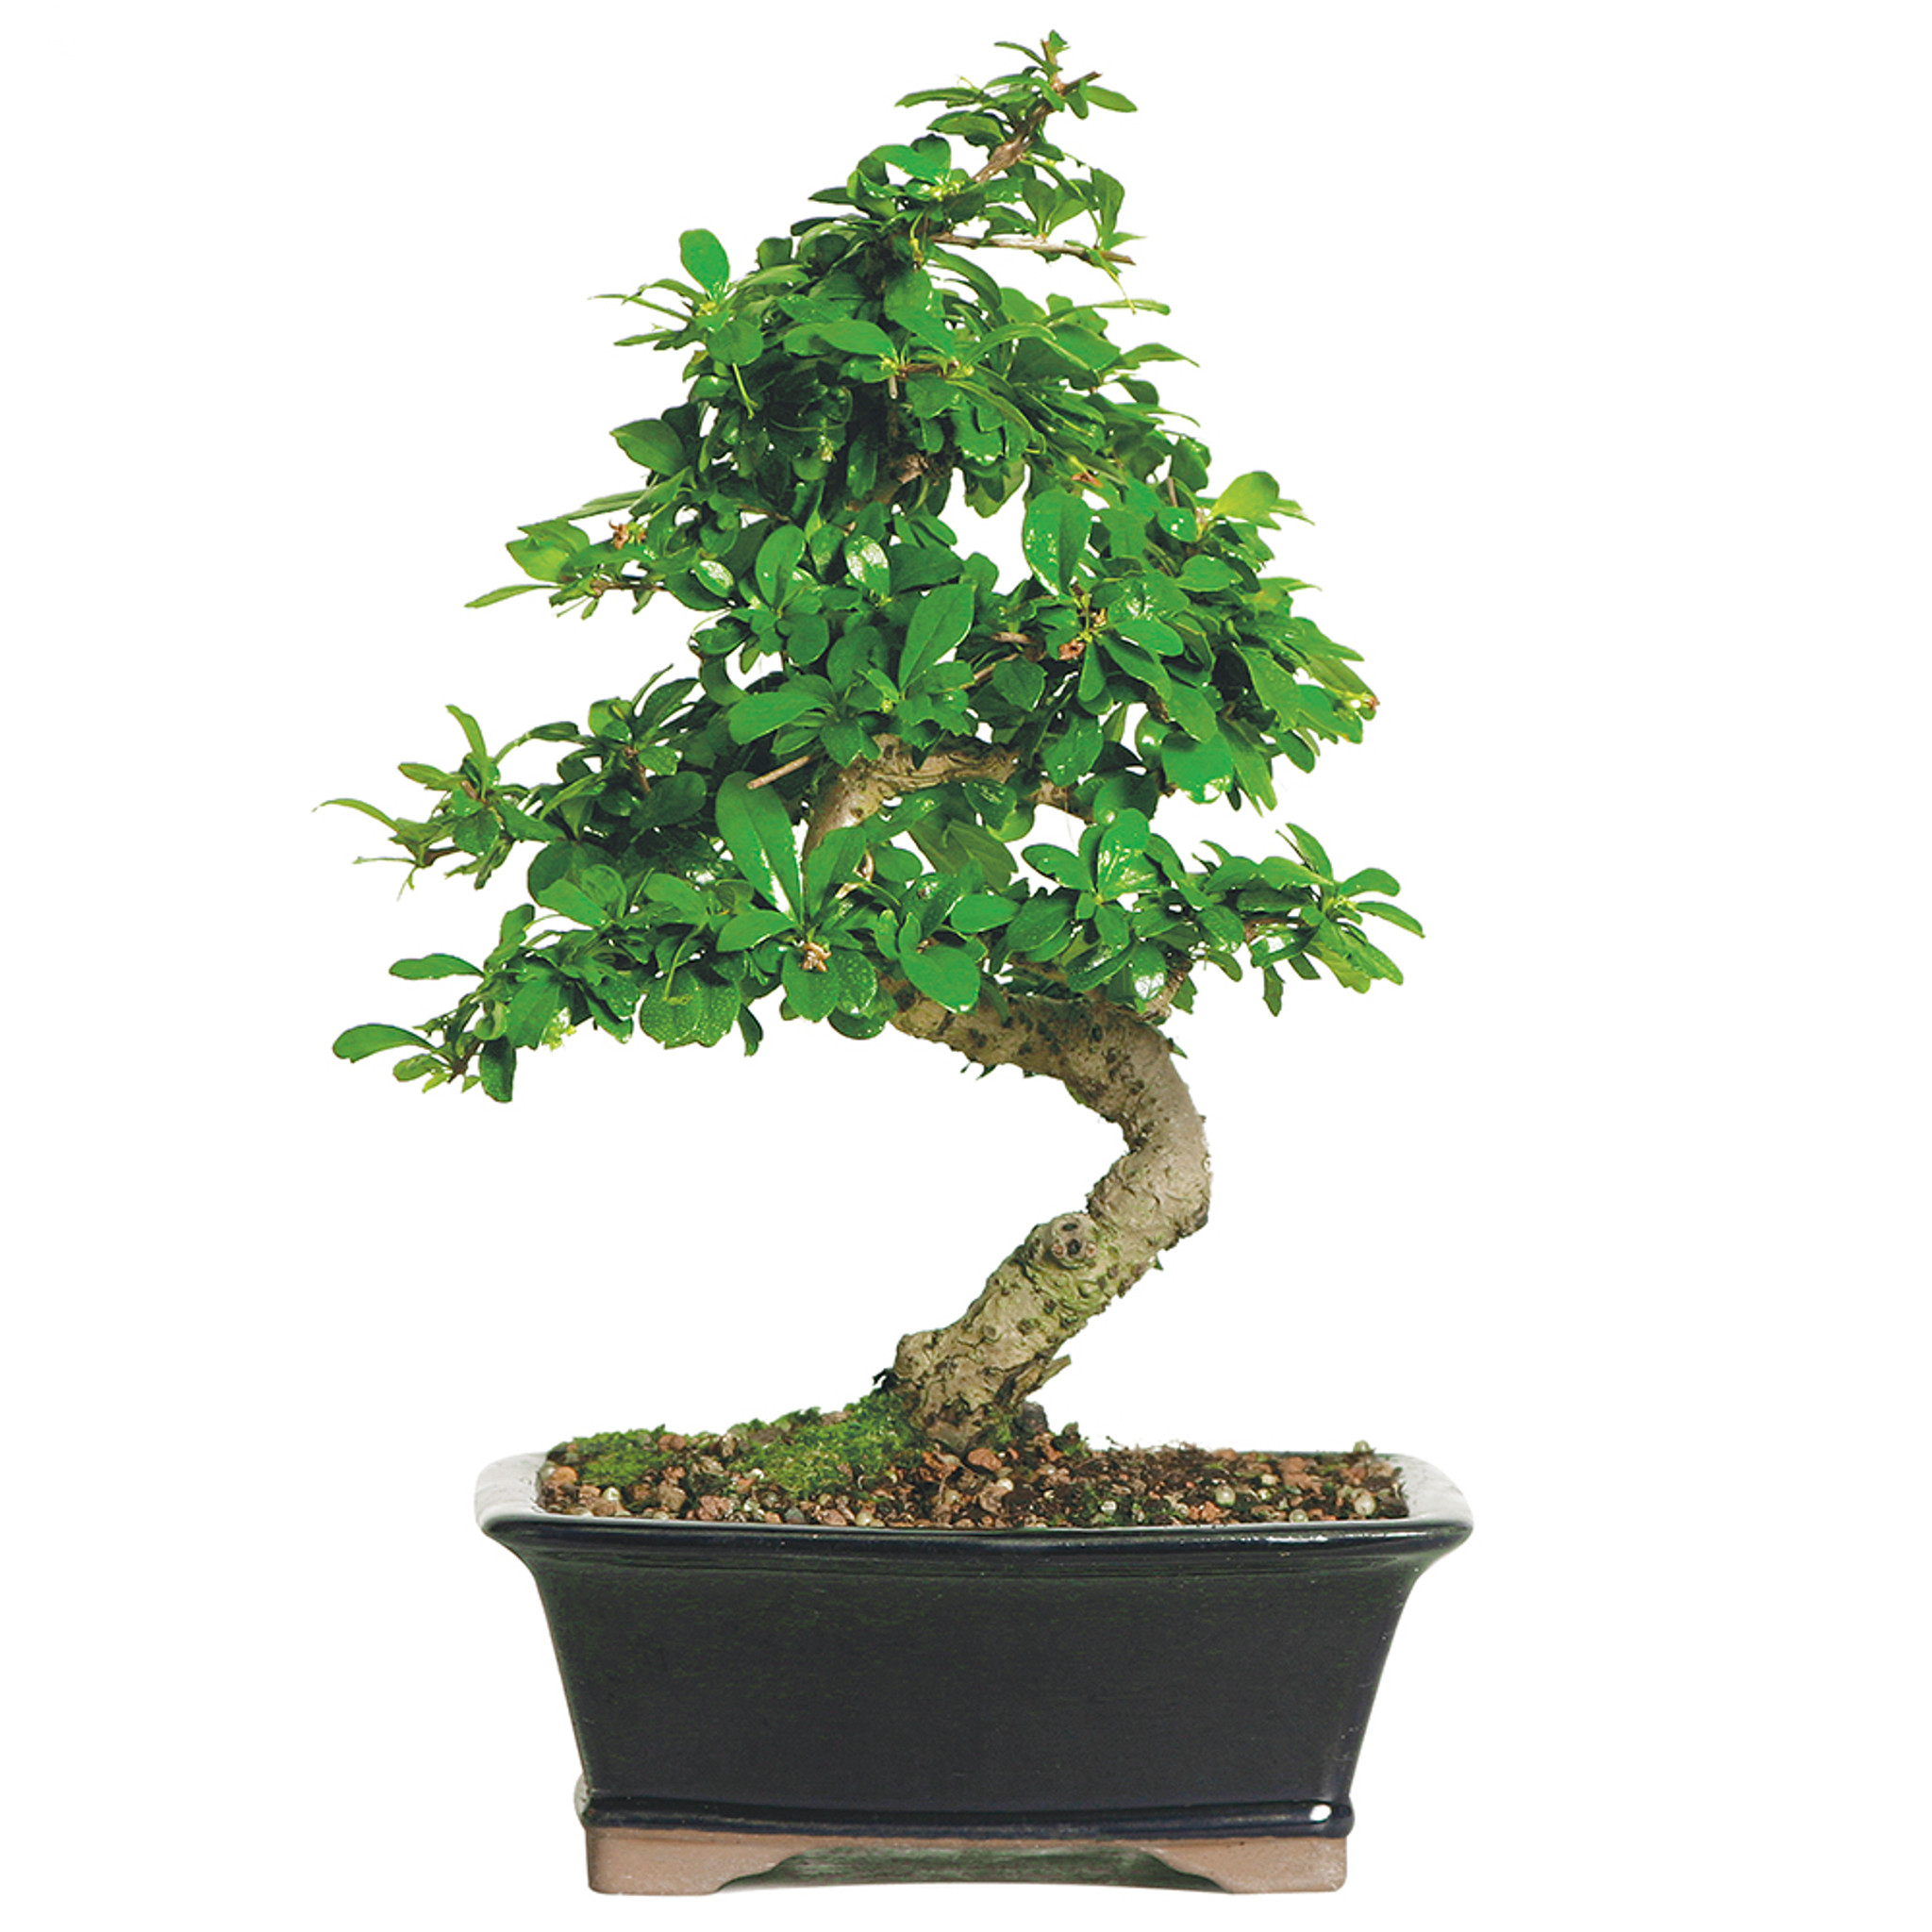 Small Brussels Bonsai Live Chinese Elm Outdoor Bonsai Tree 5 Years Old 6 8 Tall In Plastic Grower Pot Pinnacleoilandgas Com